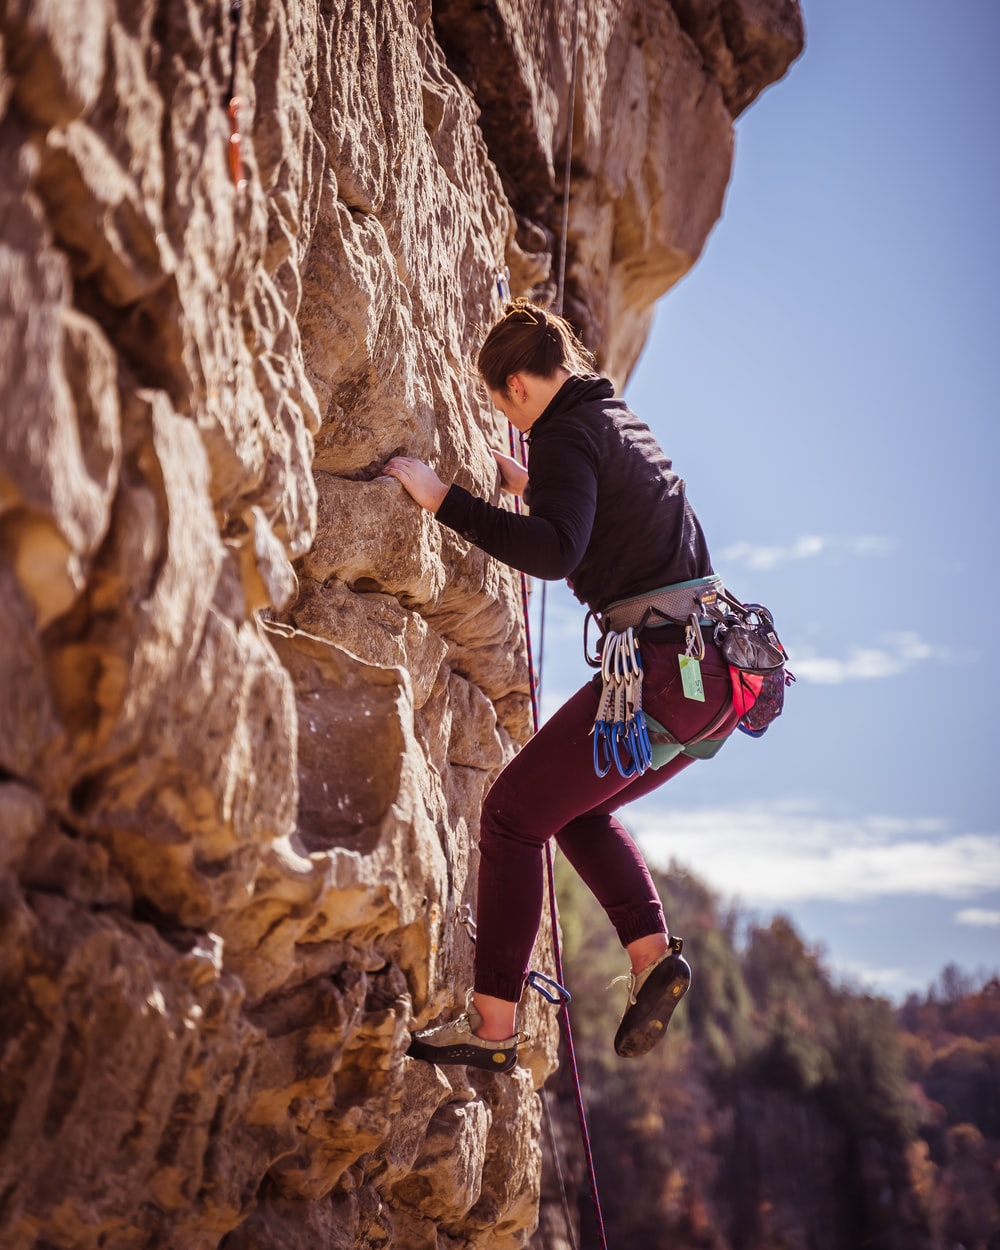 woman climbing on rock formation